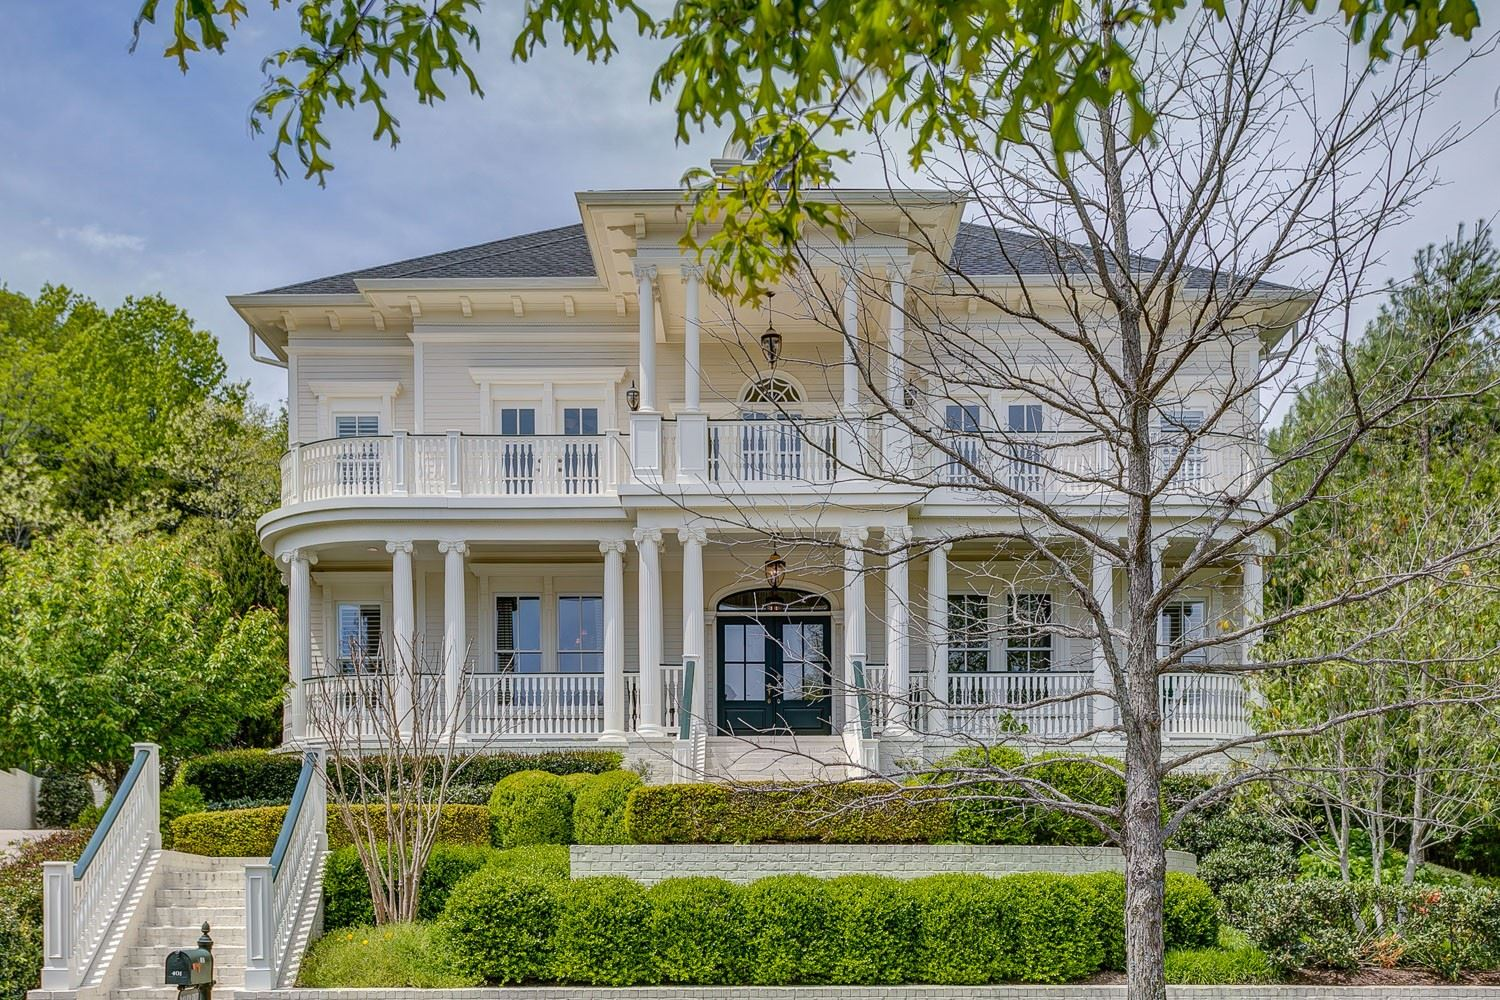 Photo of 401 Wild Elm St, Franklin, TN 37064 (MLS # 2143113)